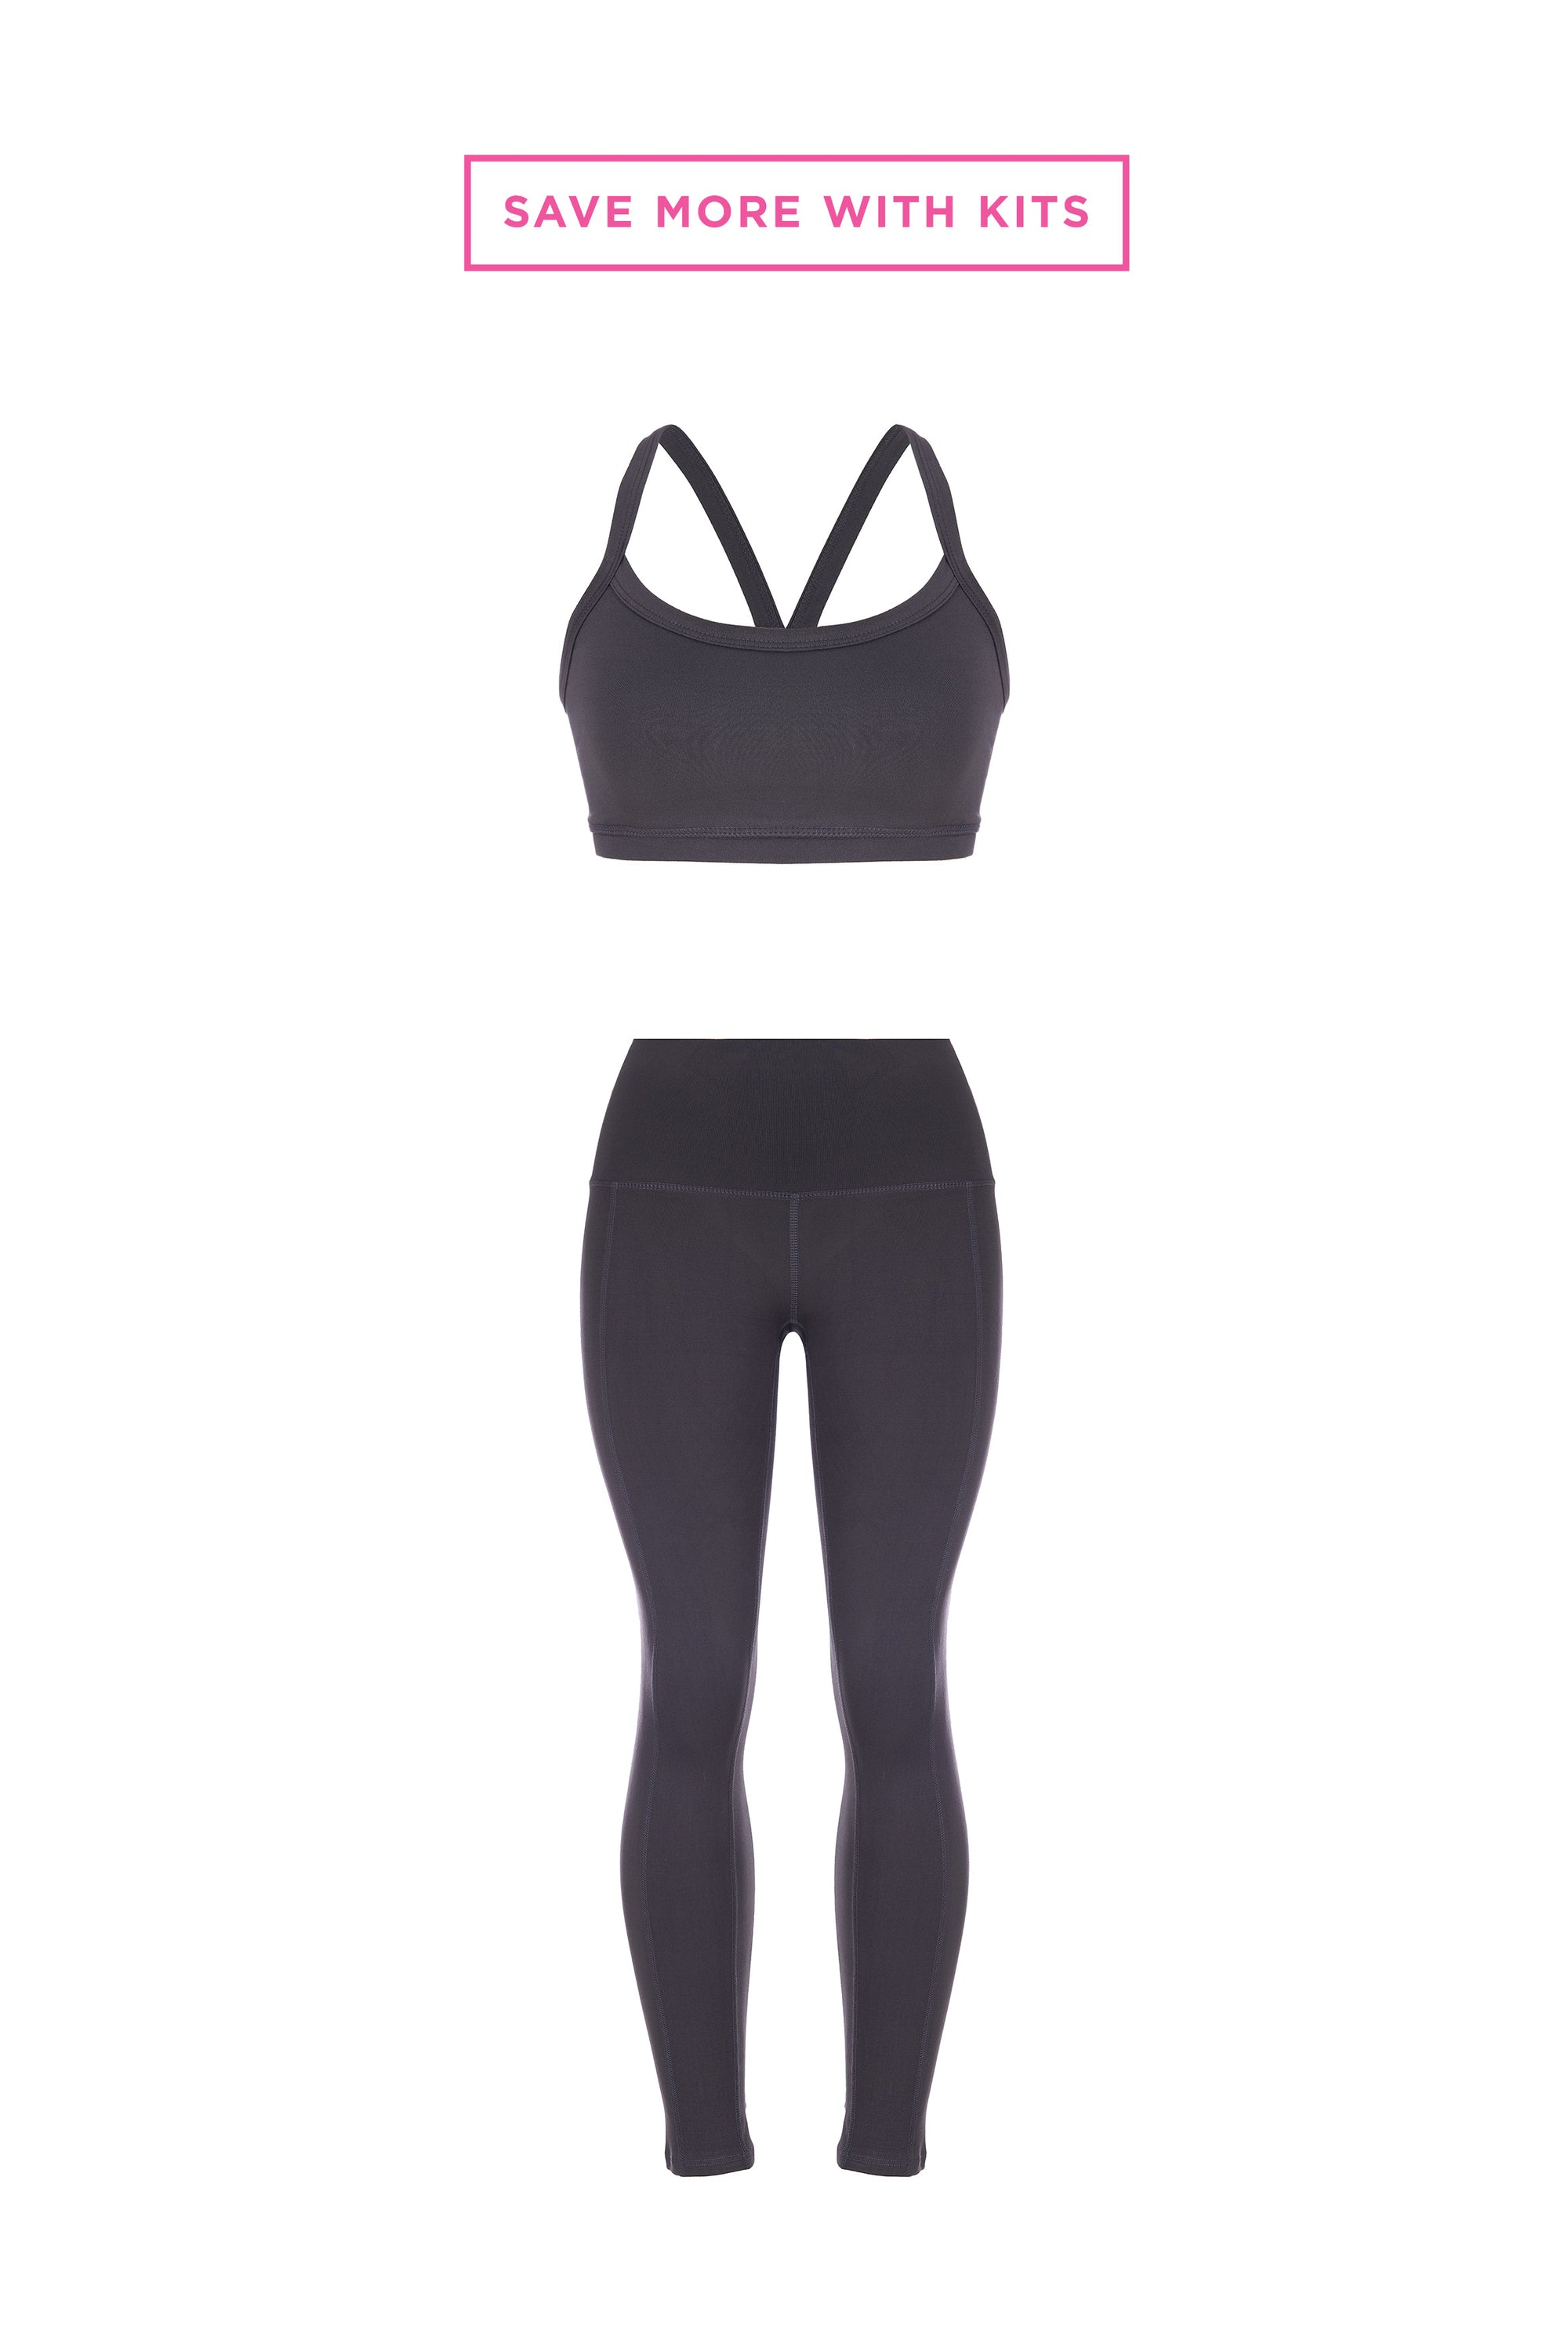 Slate Bra + Legging Kit